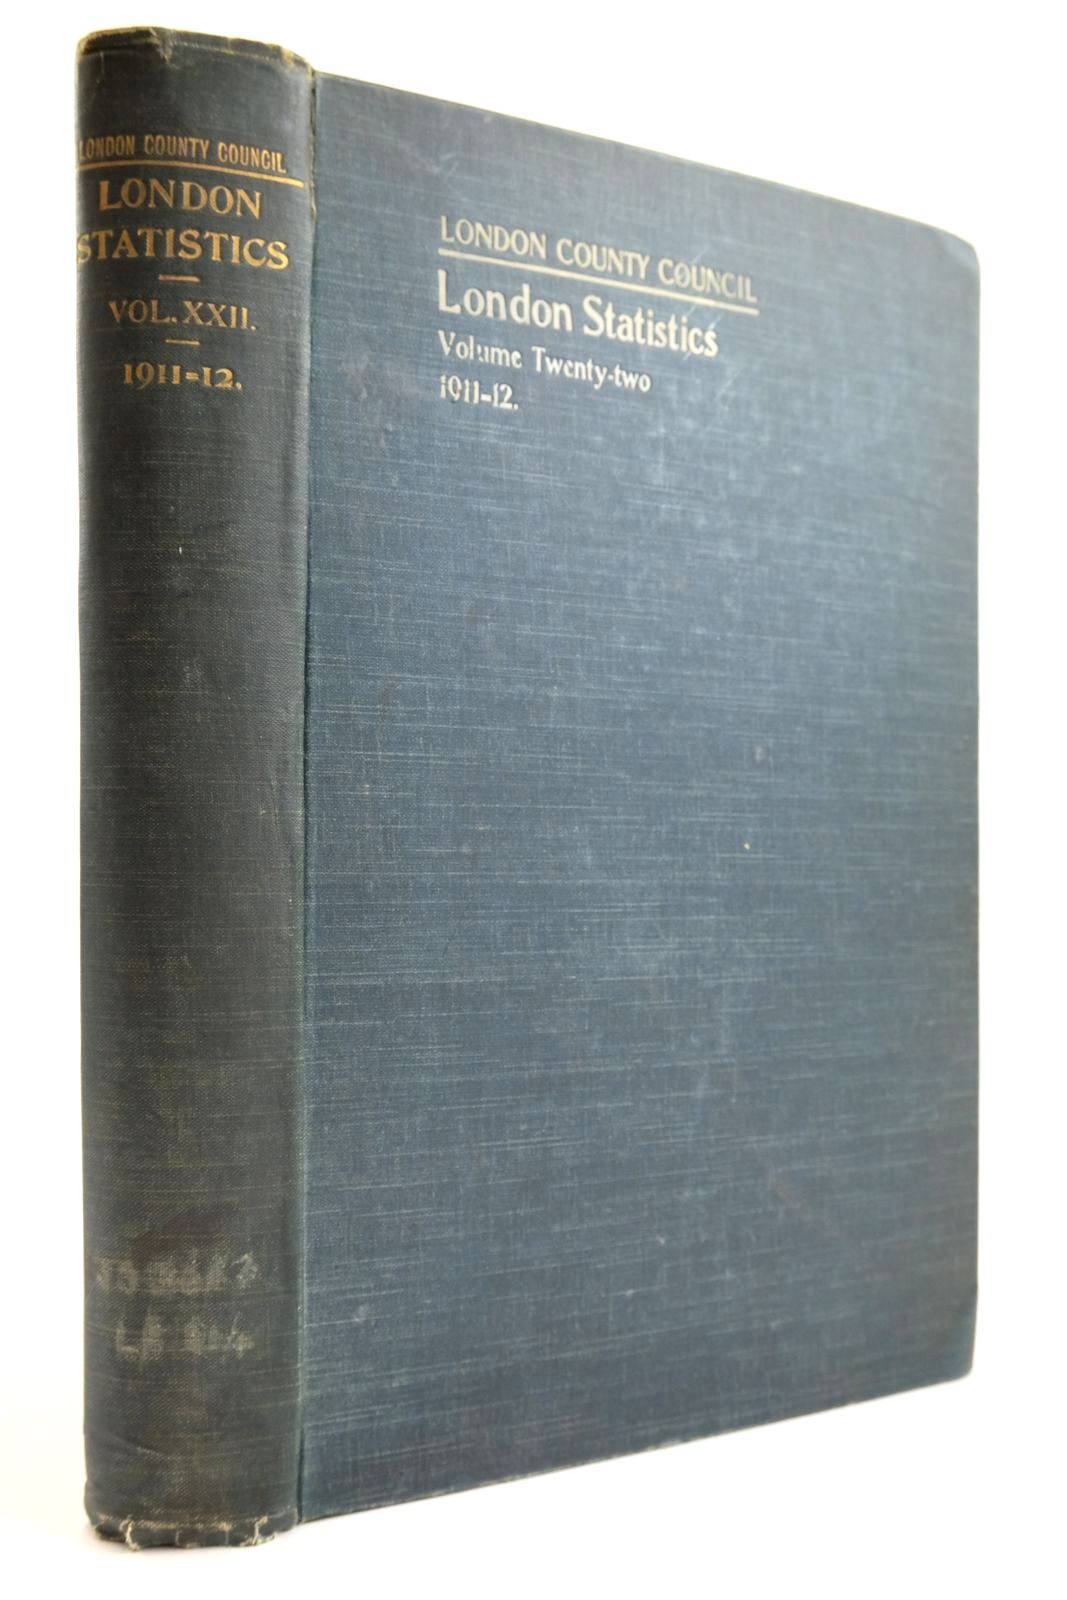 Photo of LONDON STATISTICS 1911-12 VOL. XXII- Stock Number: 2134147